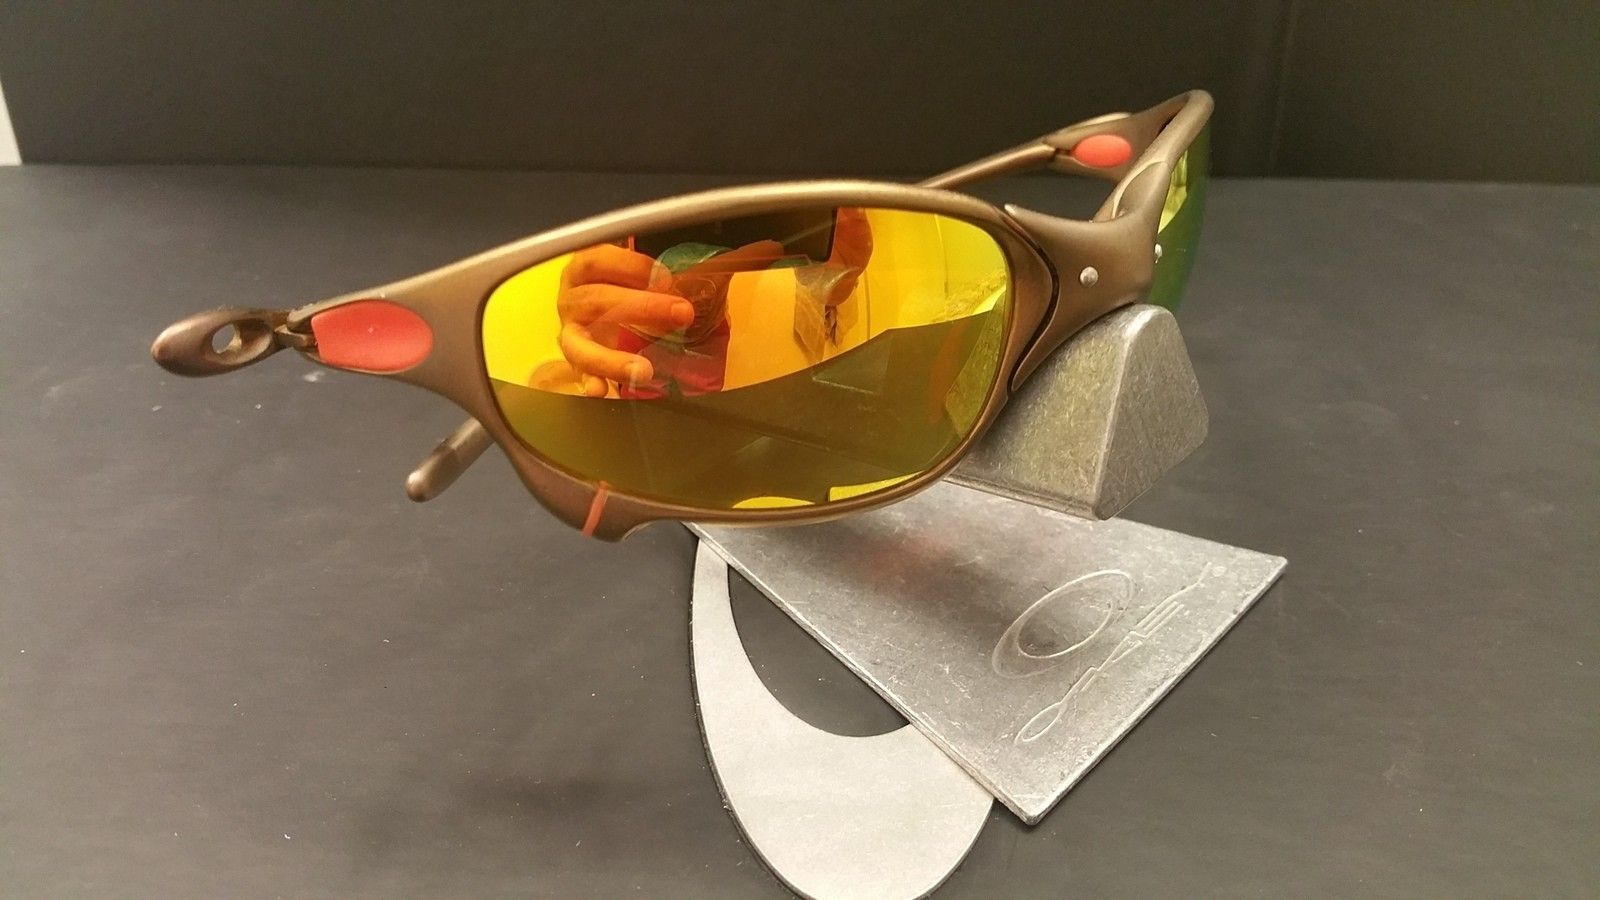 Anodized juliet with fire lenses - 20151130_222847.jpg